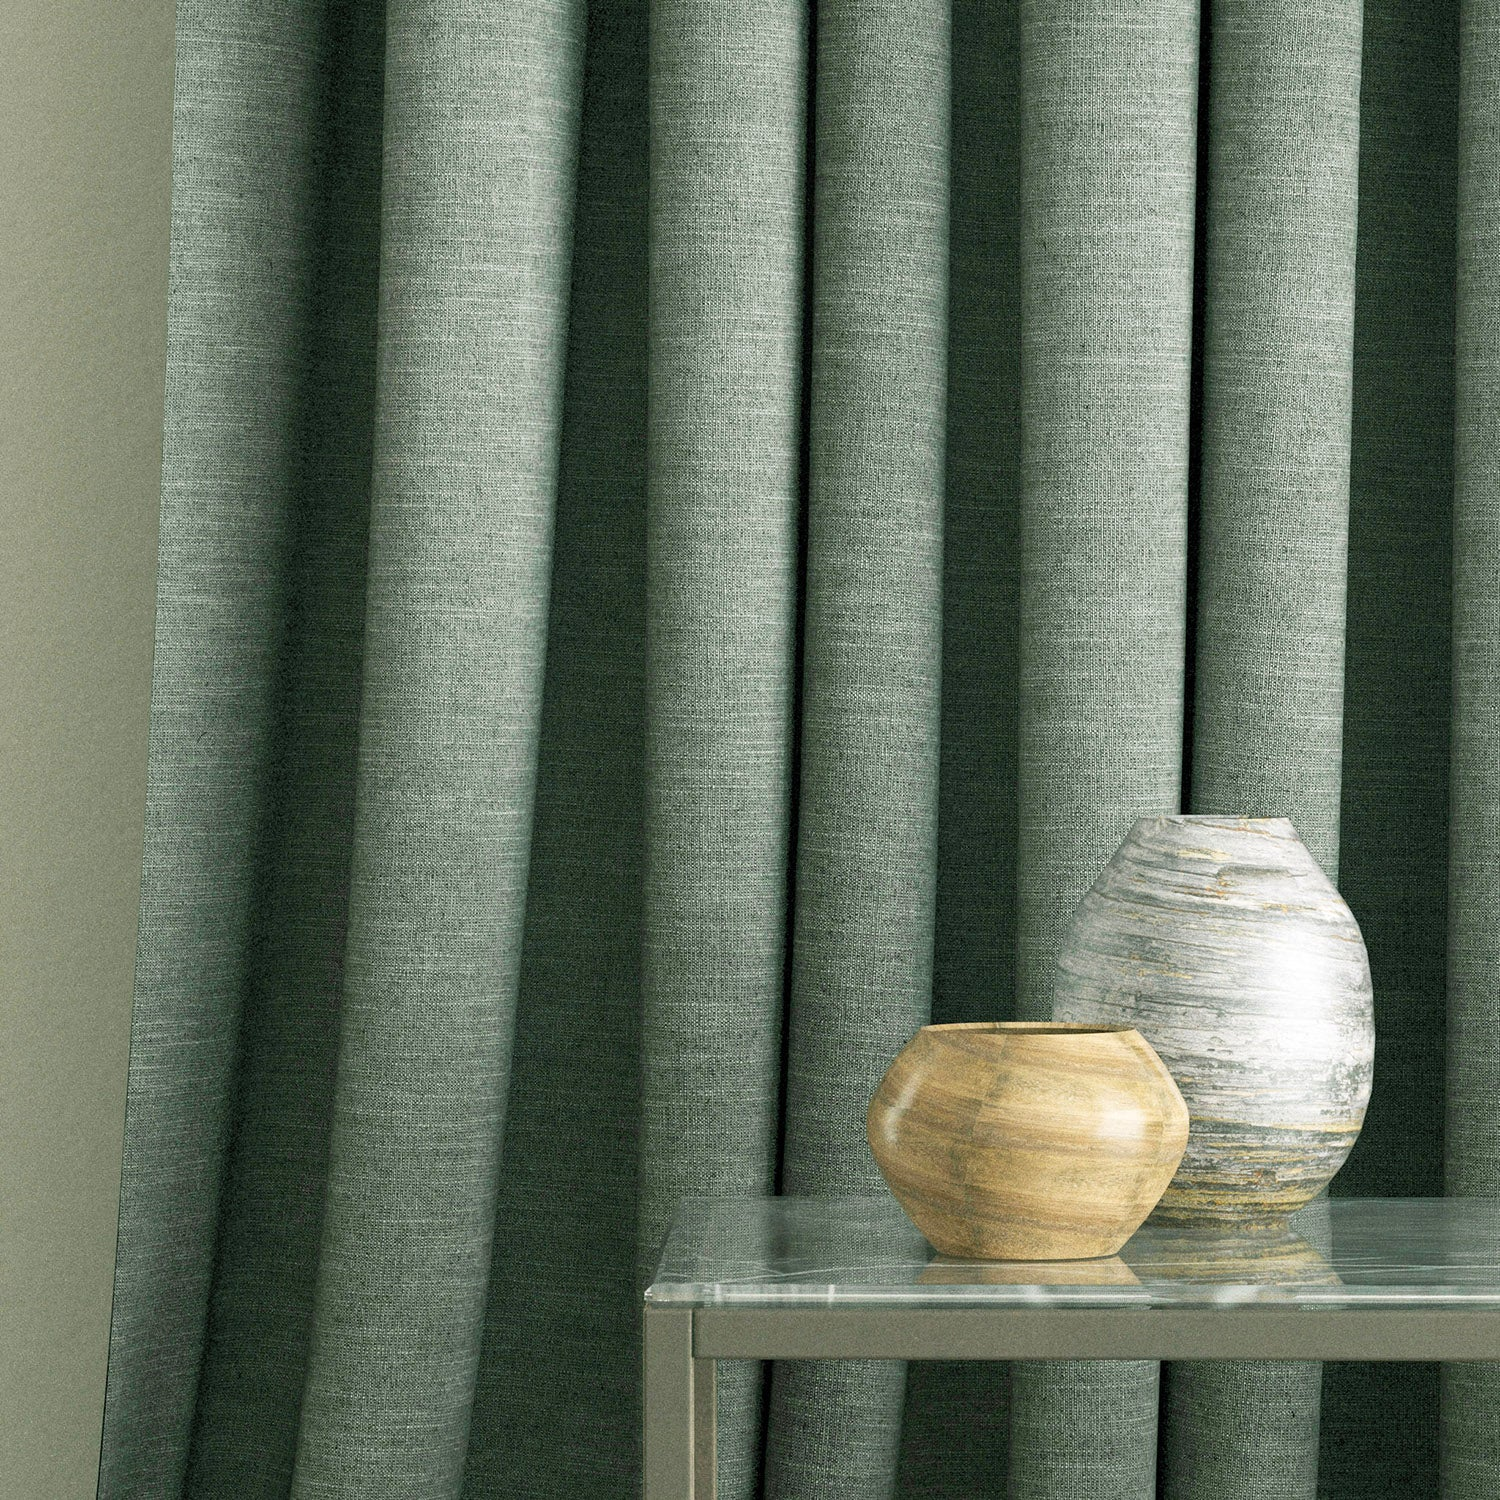 Curtains in a grey linen mix fabric